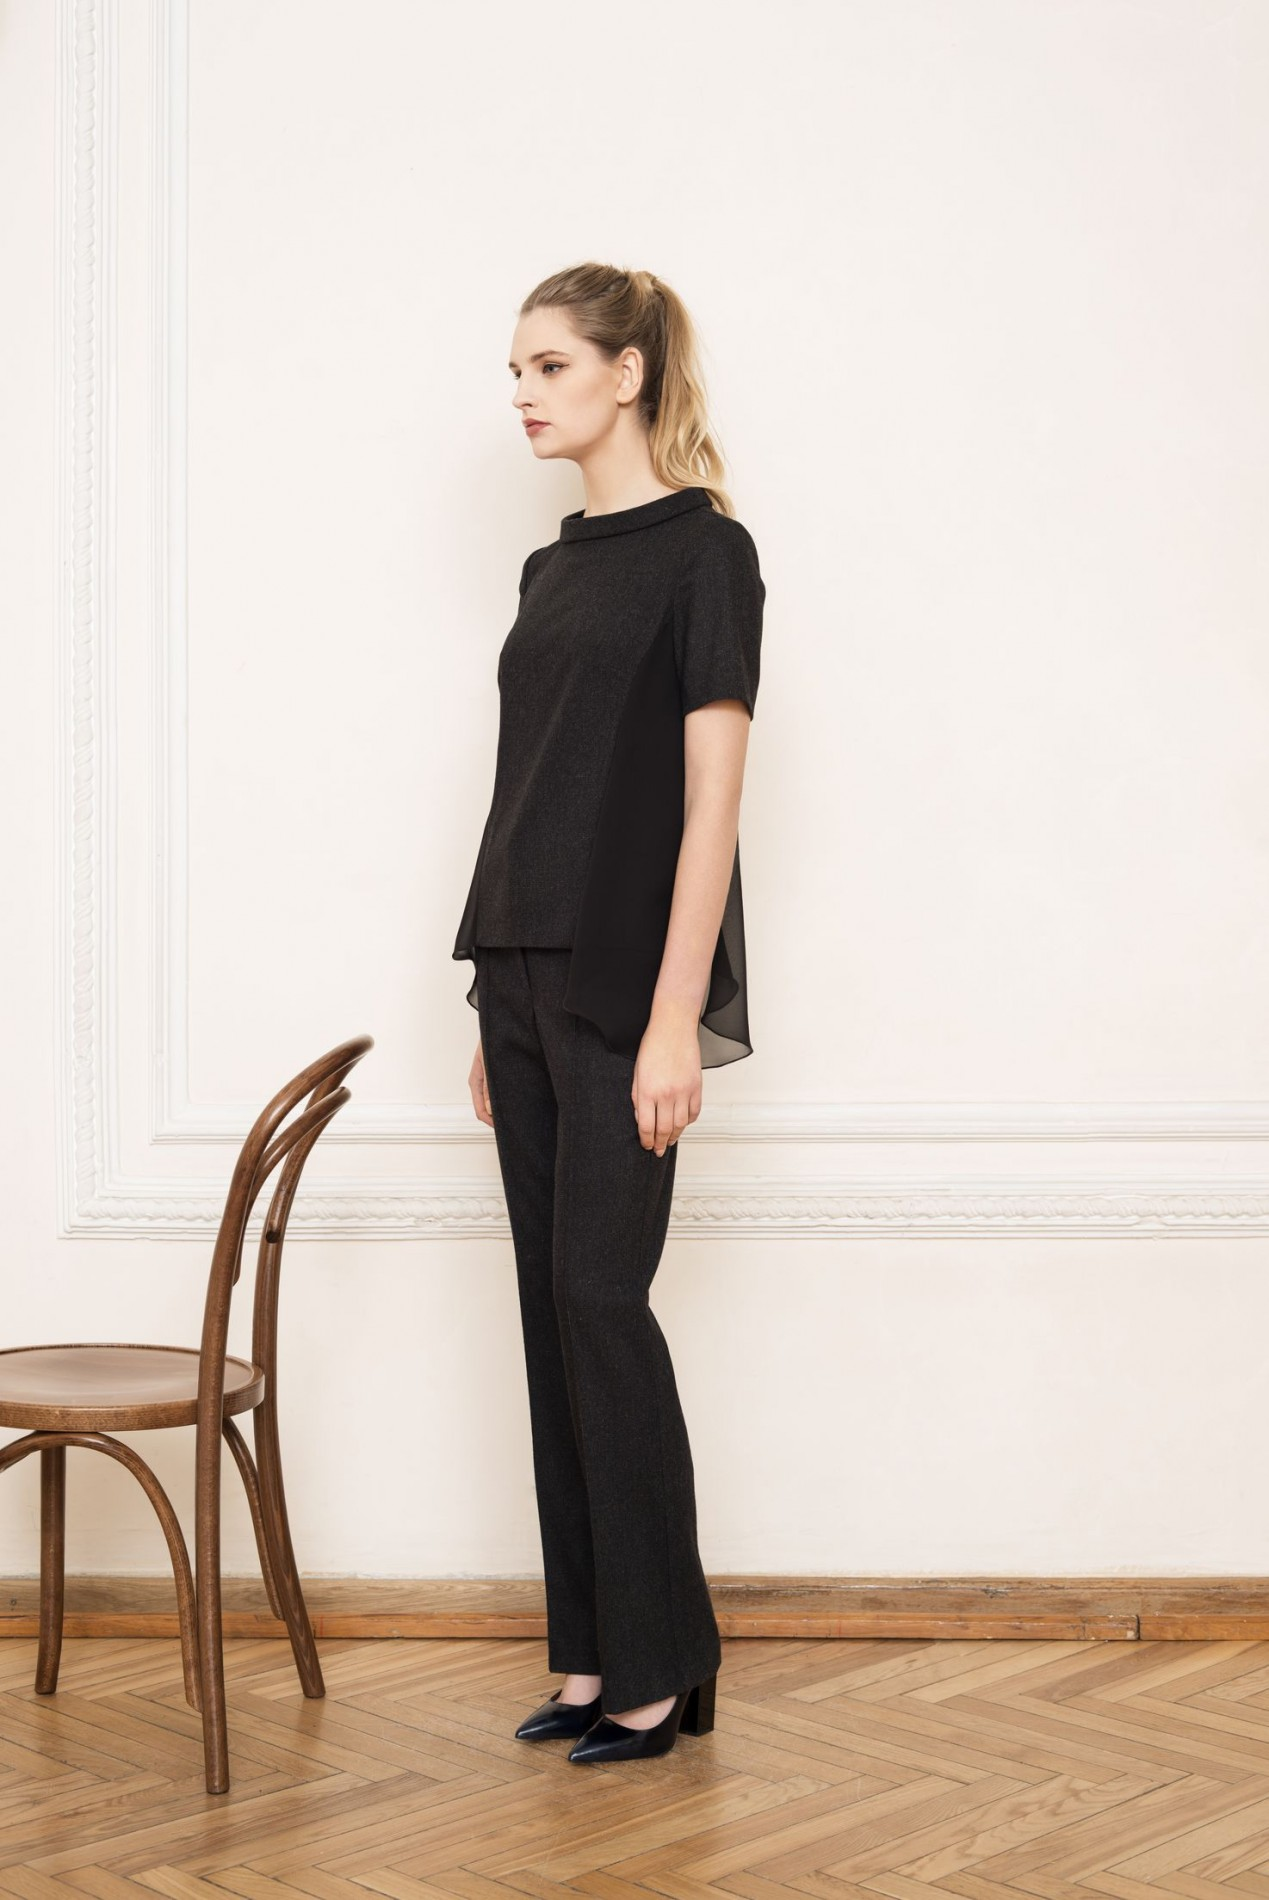 ALPS Elegant Blouse and ALPS Trousers